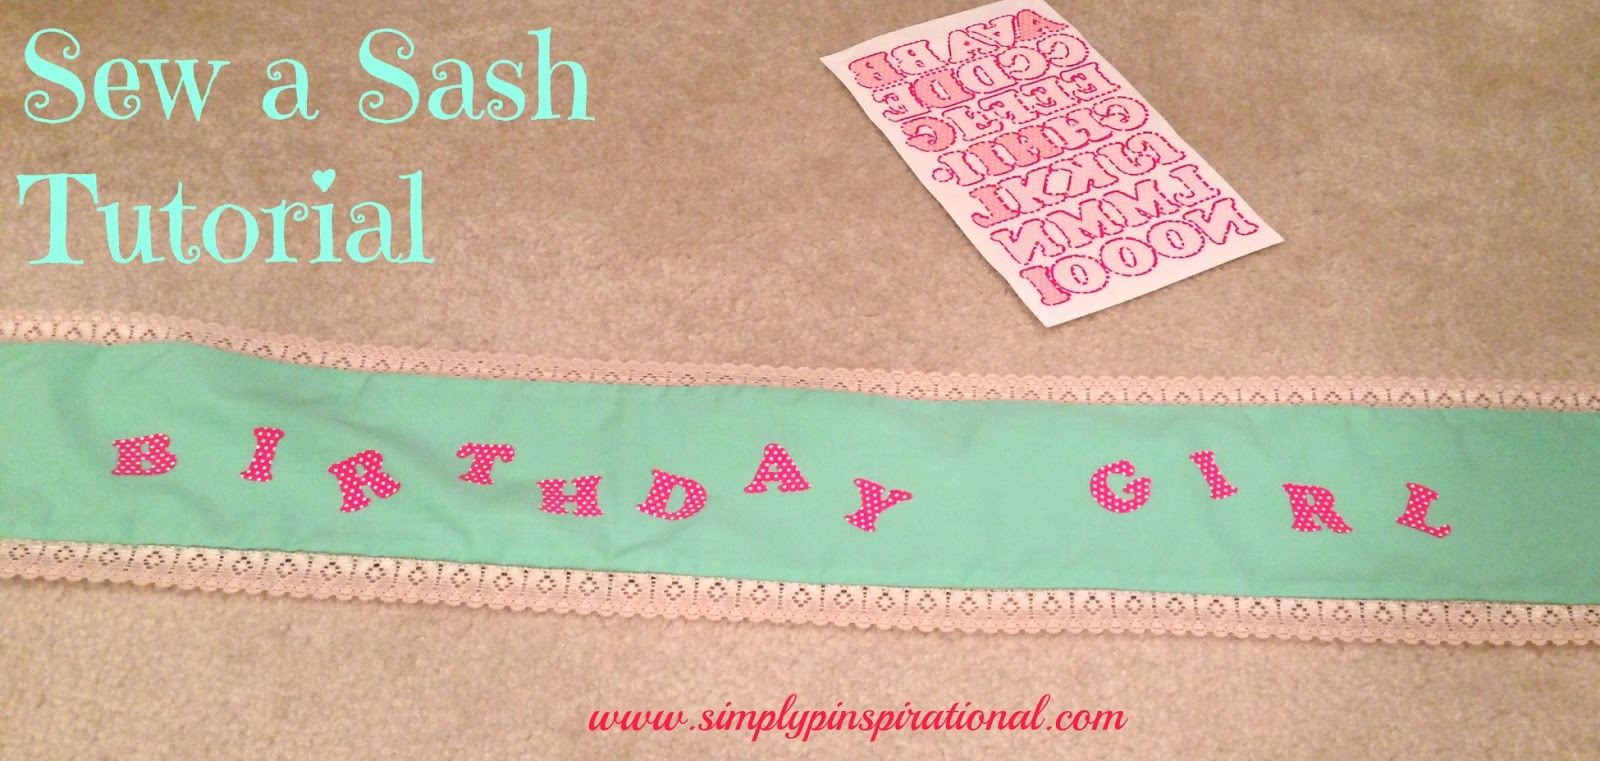 simply pinspirational  sew your own sash tutorial